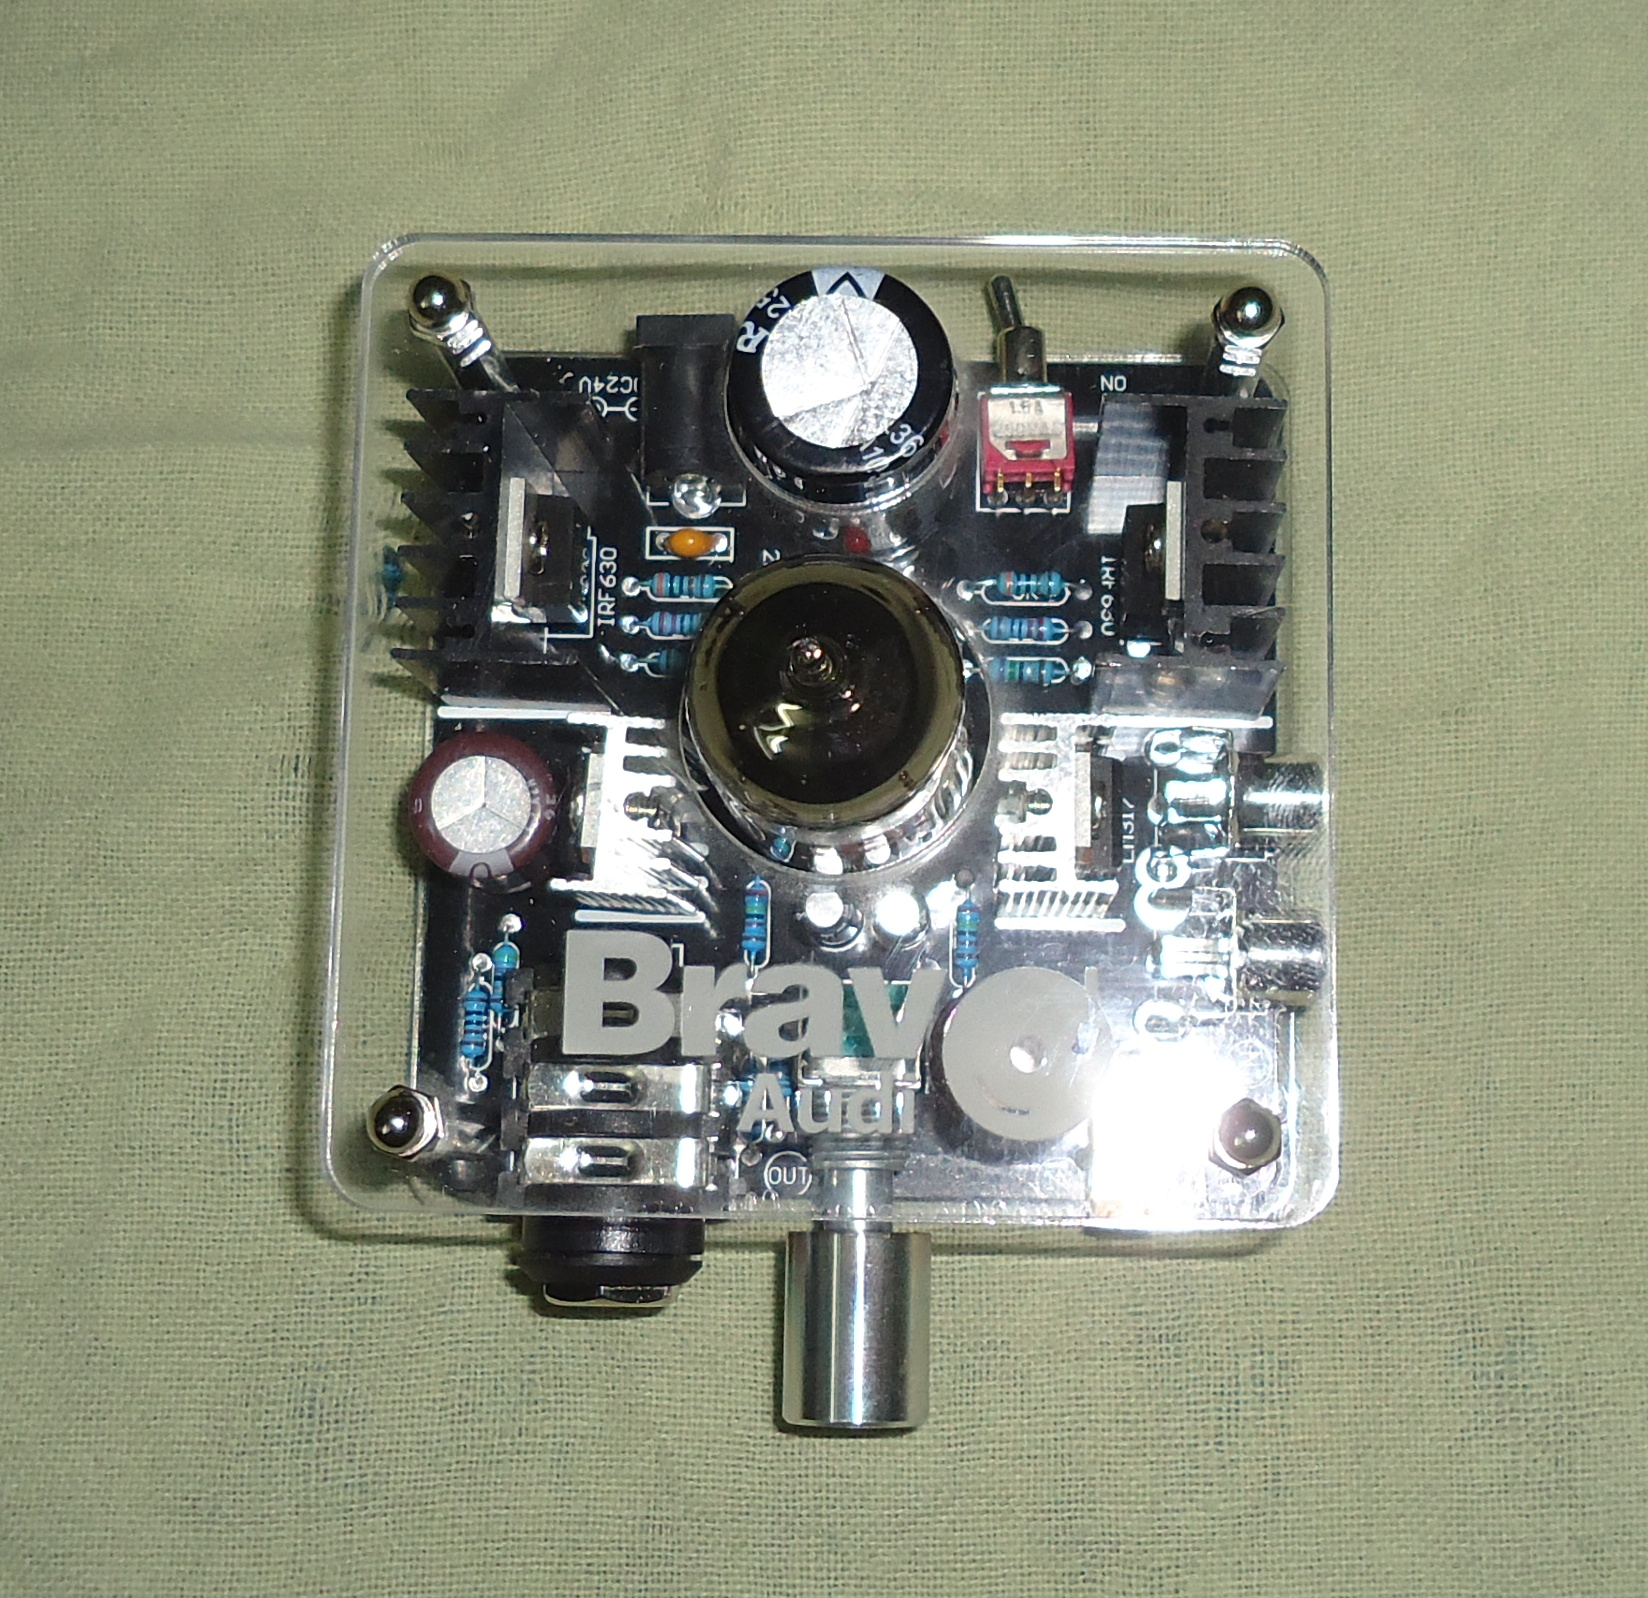 Bravo Audio Tube Amplifier V2 Reviews Headphone And Usable If A Friend Wants Music Circuit I Thinks This All Of Bravos Amps Are Hybrids Driven By Mosfets Pure Class Ensures In Mammoth Output Power Appreciable Clear Sound Quality